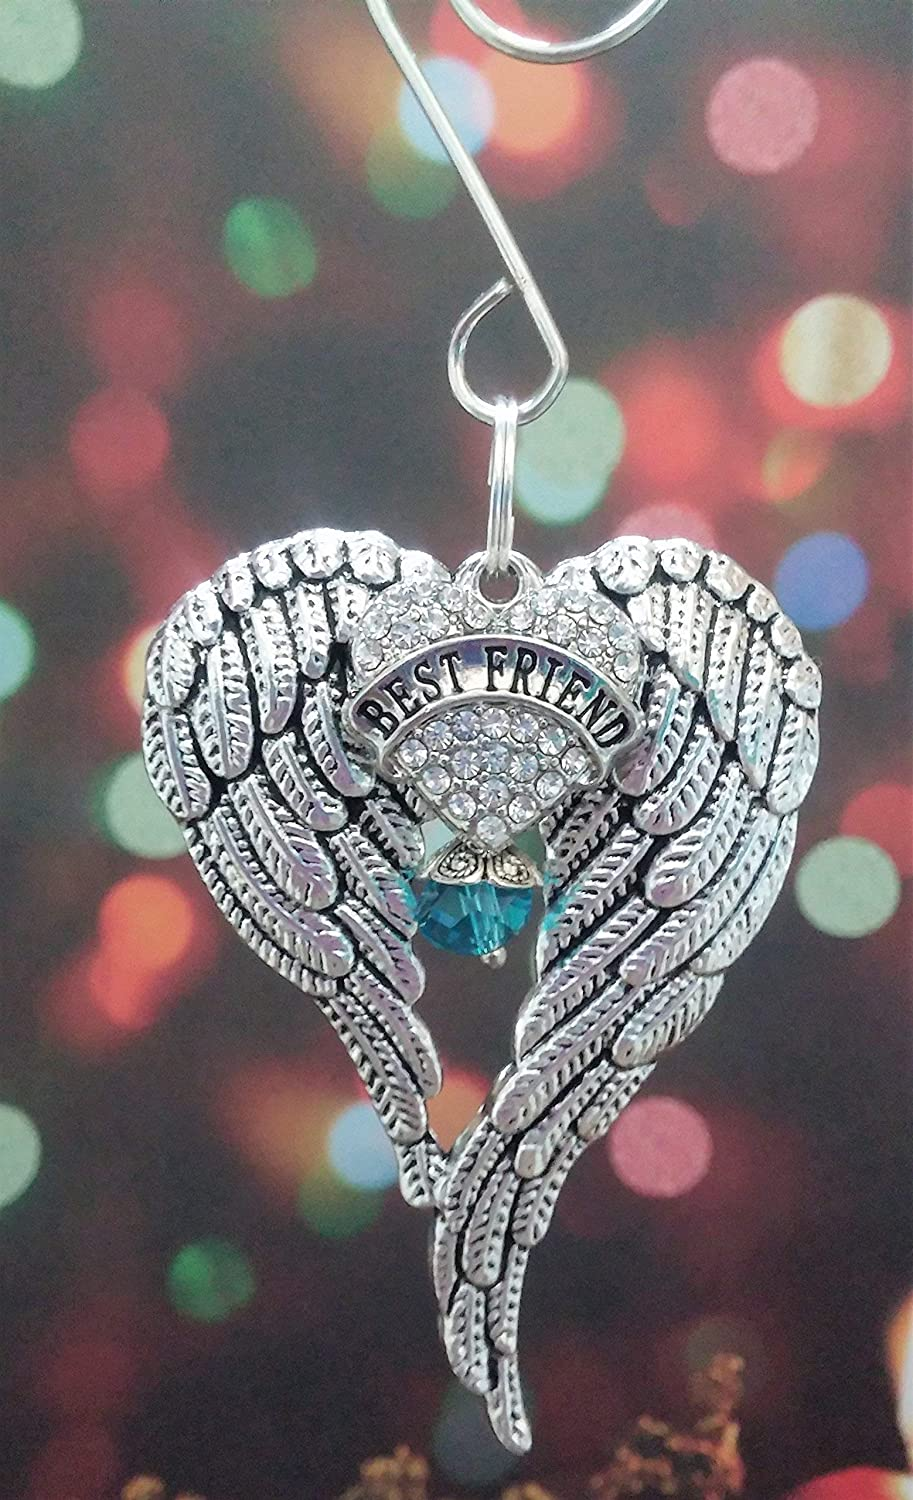 Mom Angel Wings Memorial Ornament In Memory Gift with Rhinestone Heart and Purple Crystal